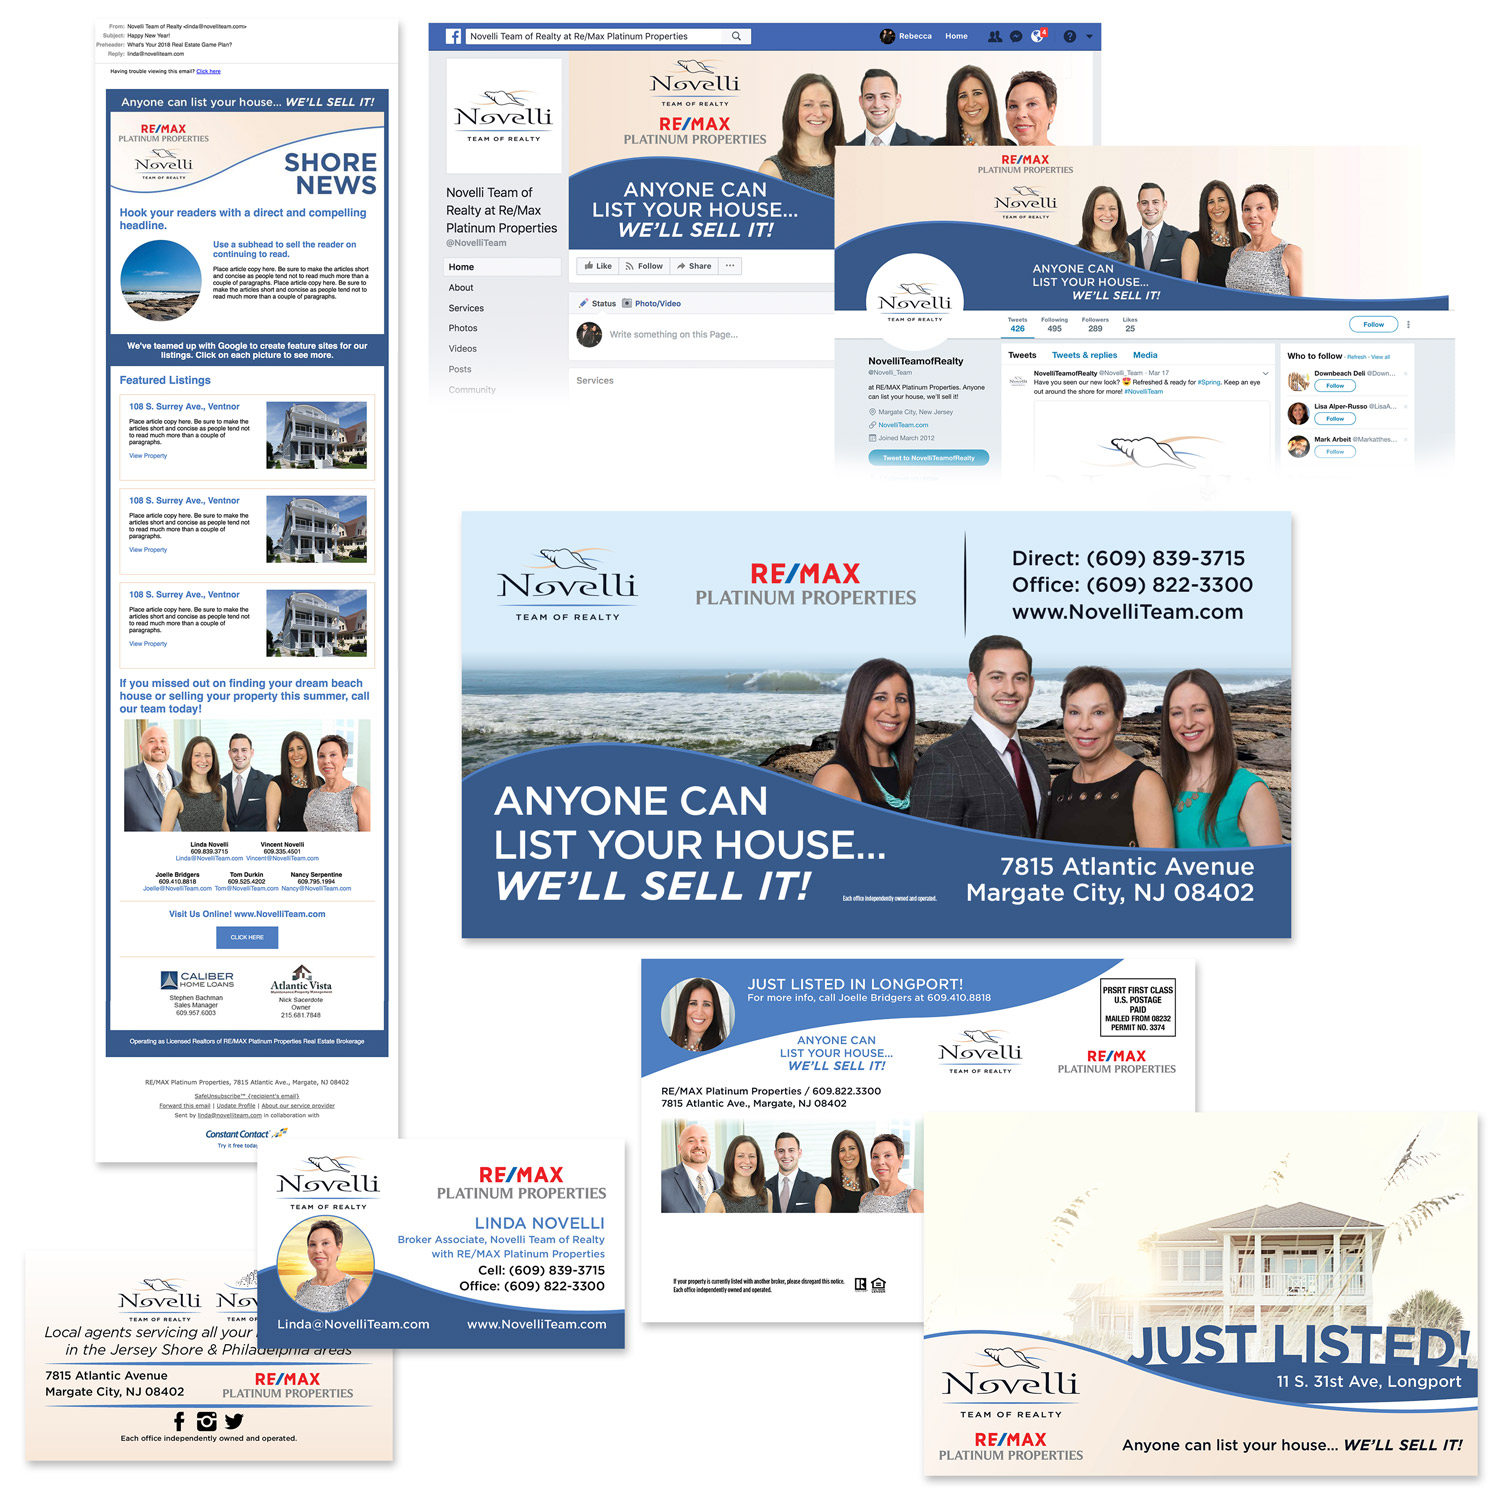 print and digital design materials for Novelli team of realty in margate nj by eyely design